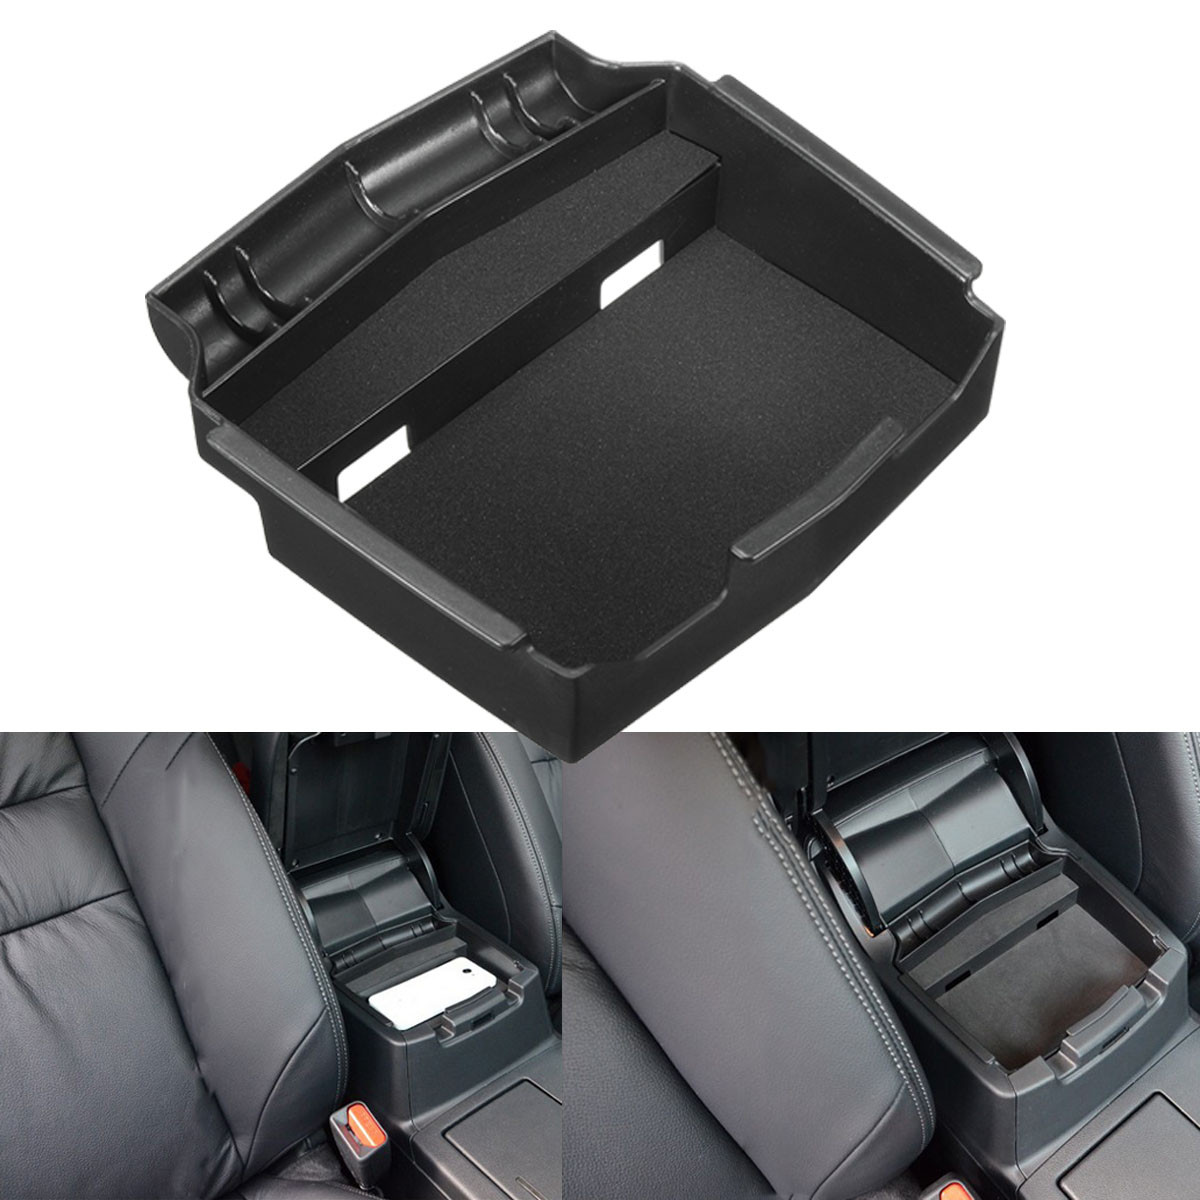 bo te de rangement accoudoir central noir voiture auto pour honda crv 2012 2016 achat vente. Black Bedroom Furniture Sets. Home Design Ideas